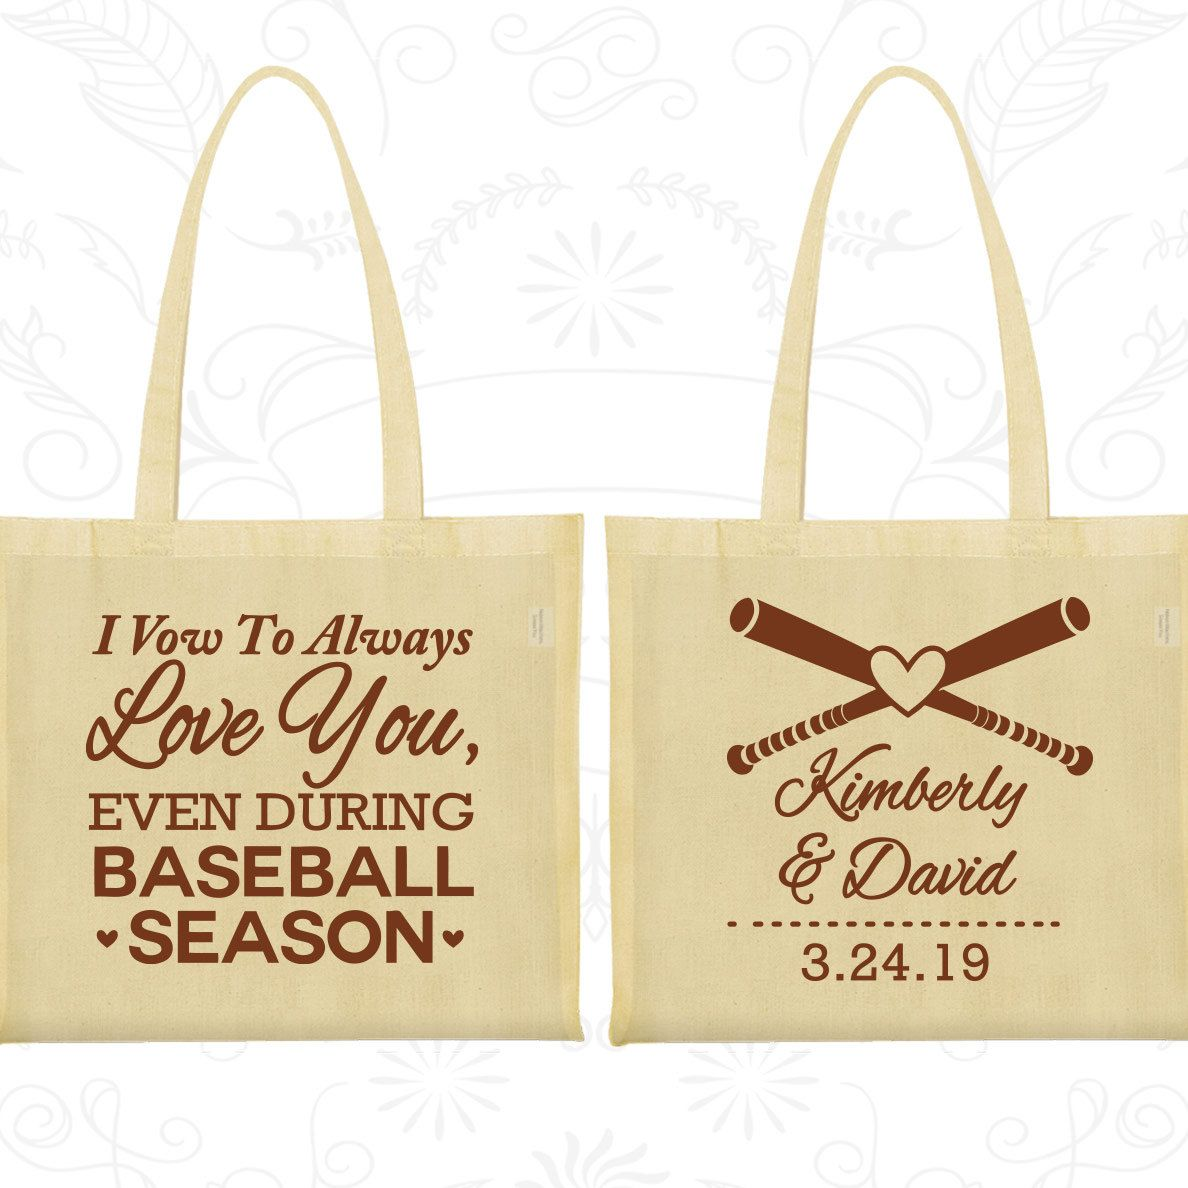 I Vow to Always Love You, Even During Baseball Season, Cheap Canvas Bags, Baseball Wedding Bags, Custom Tote (301)